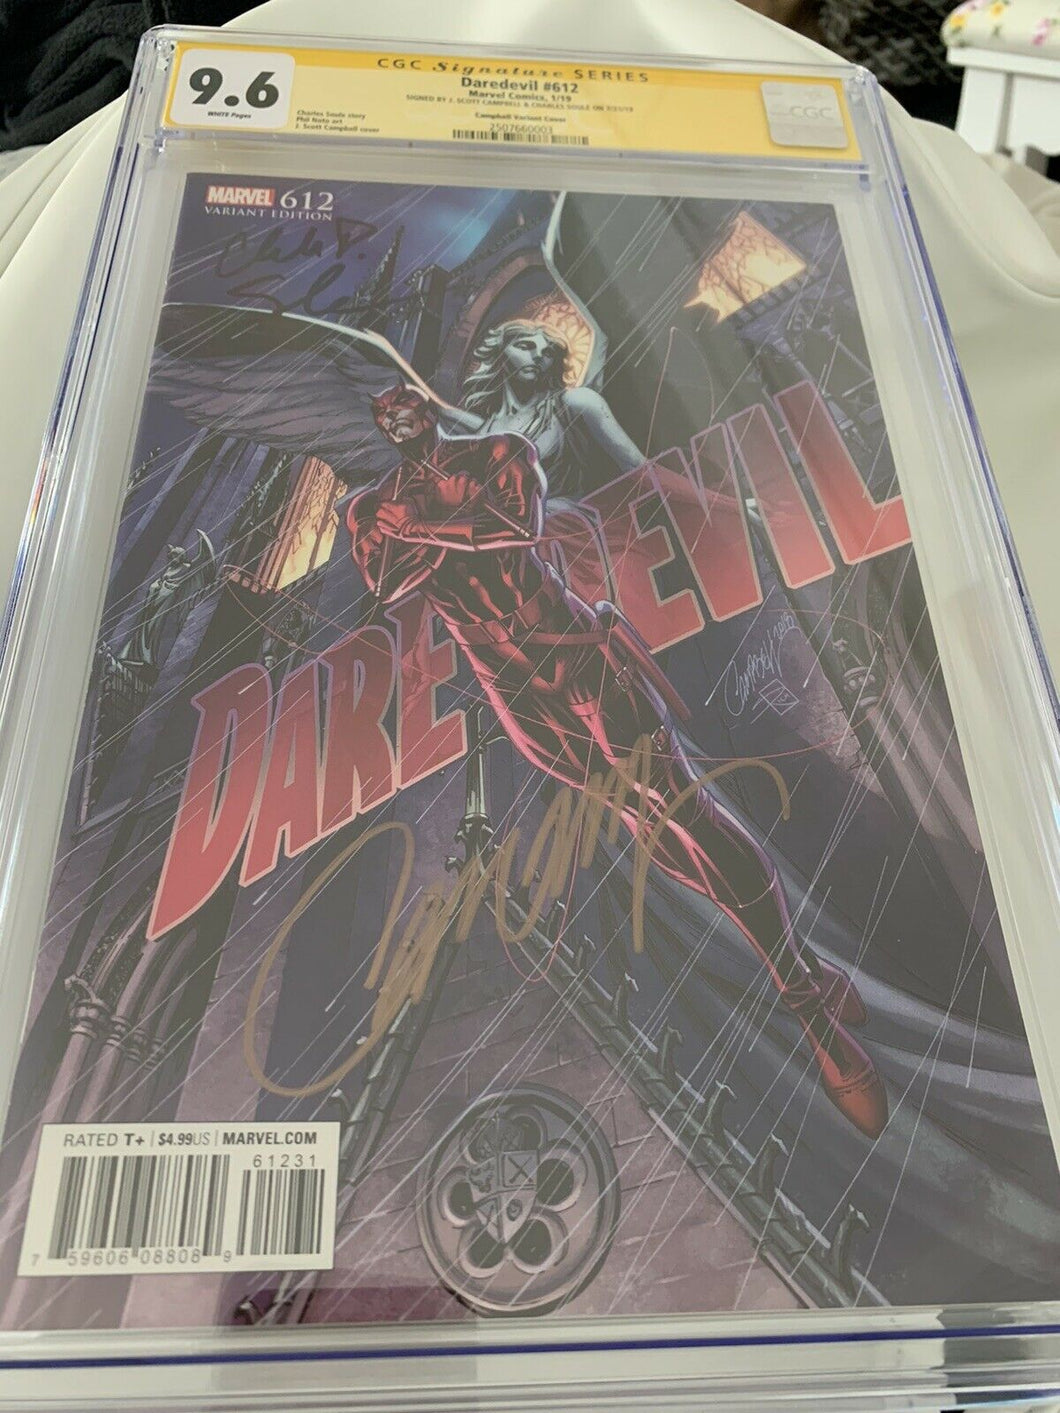 DAREDEVIL 612 CGC SS 9.6 J SCOTT CAMPBELL 1:100 VARIANT Campbell and Soule